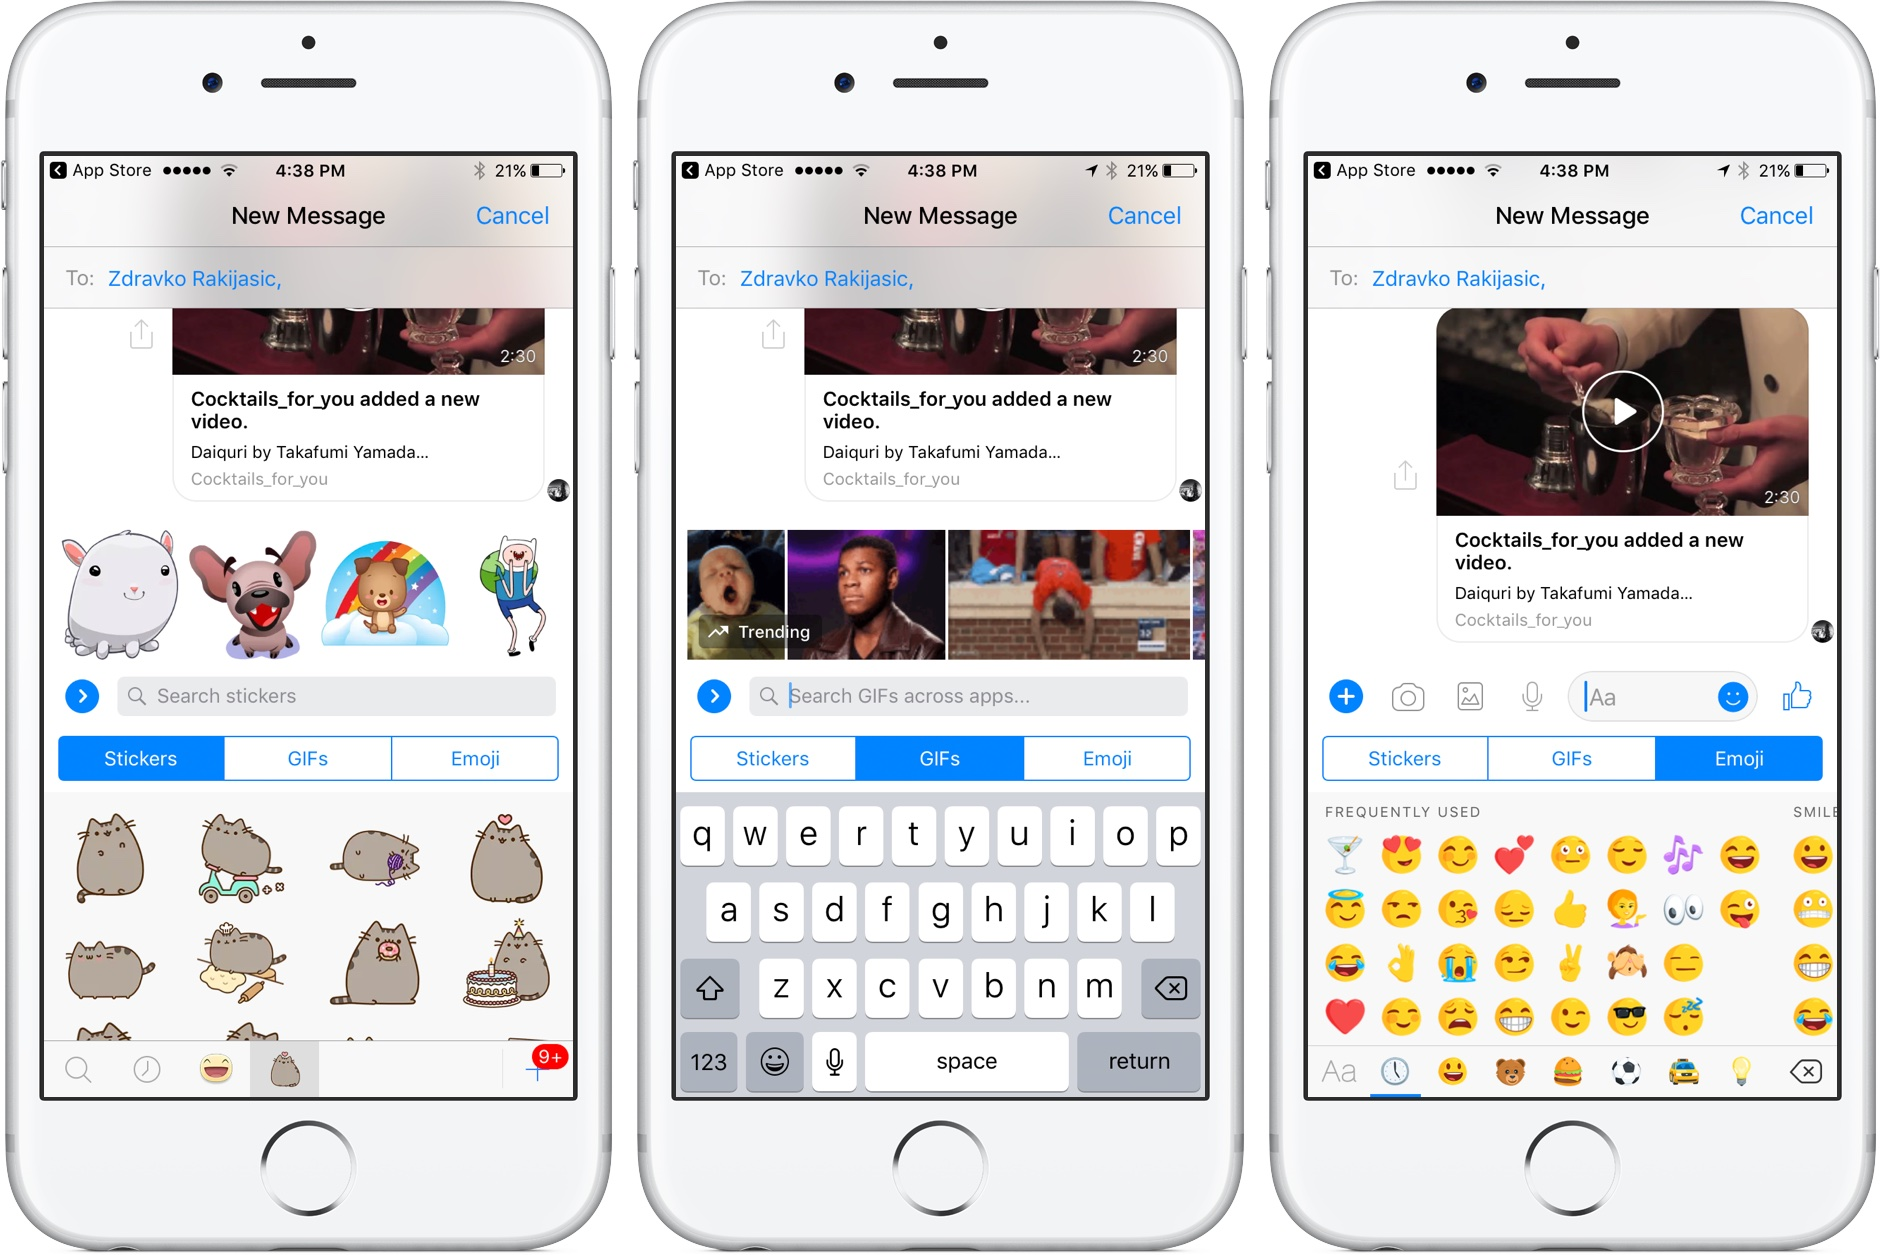 Facebook Messenger testing iOS 10 Messages-like chat interface redesign